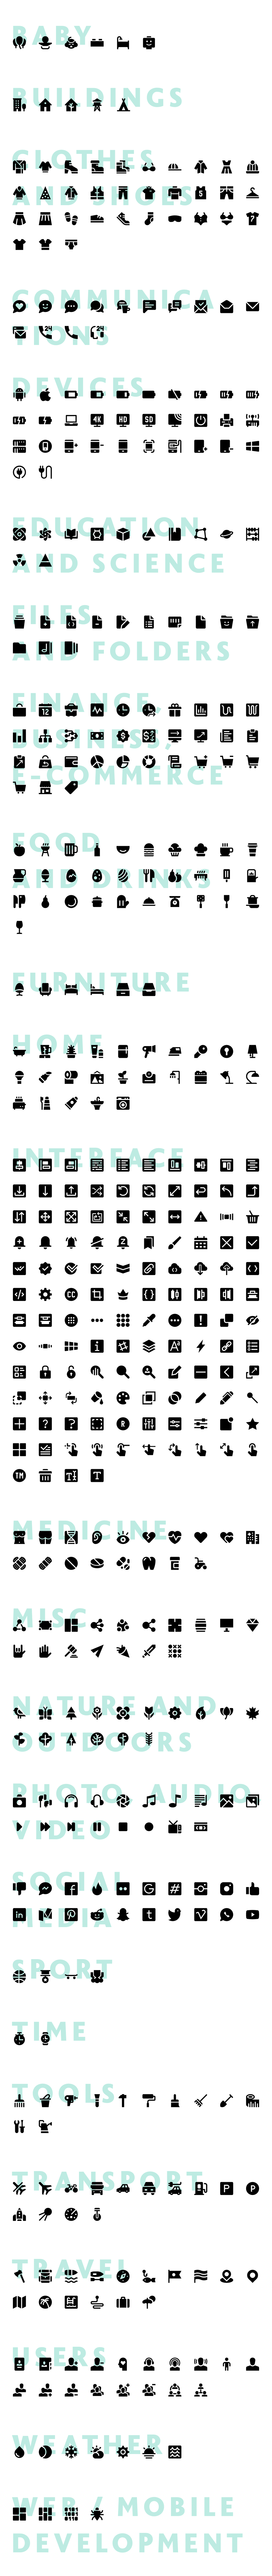 Basic solid icons preview cm 1160x11000px